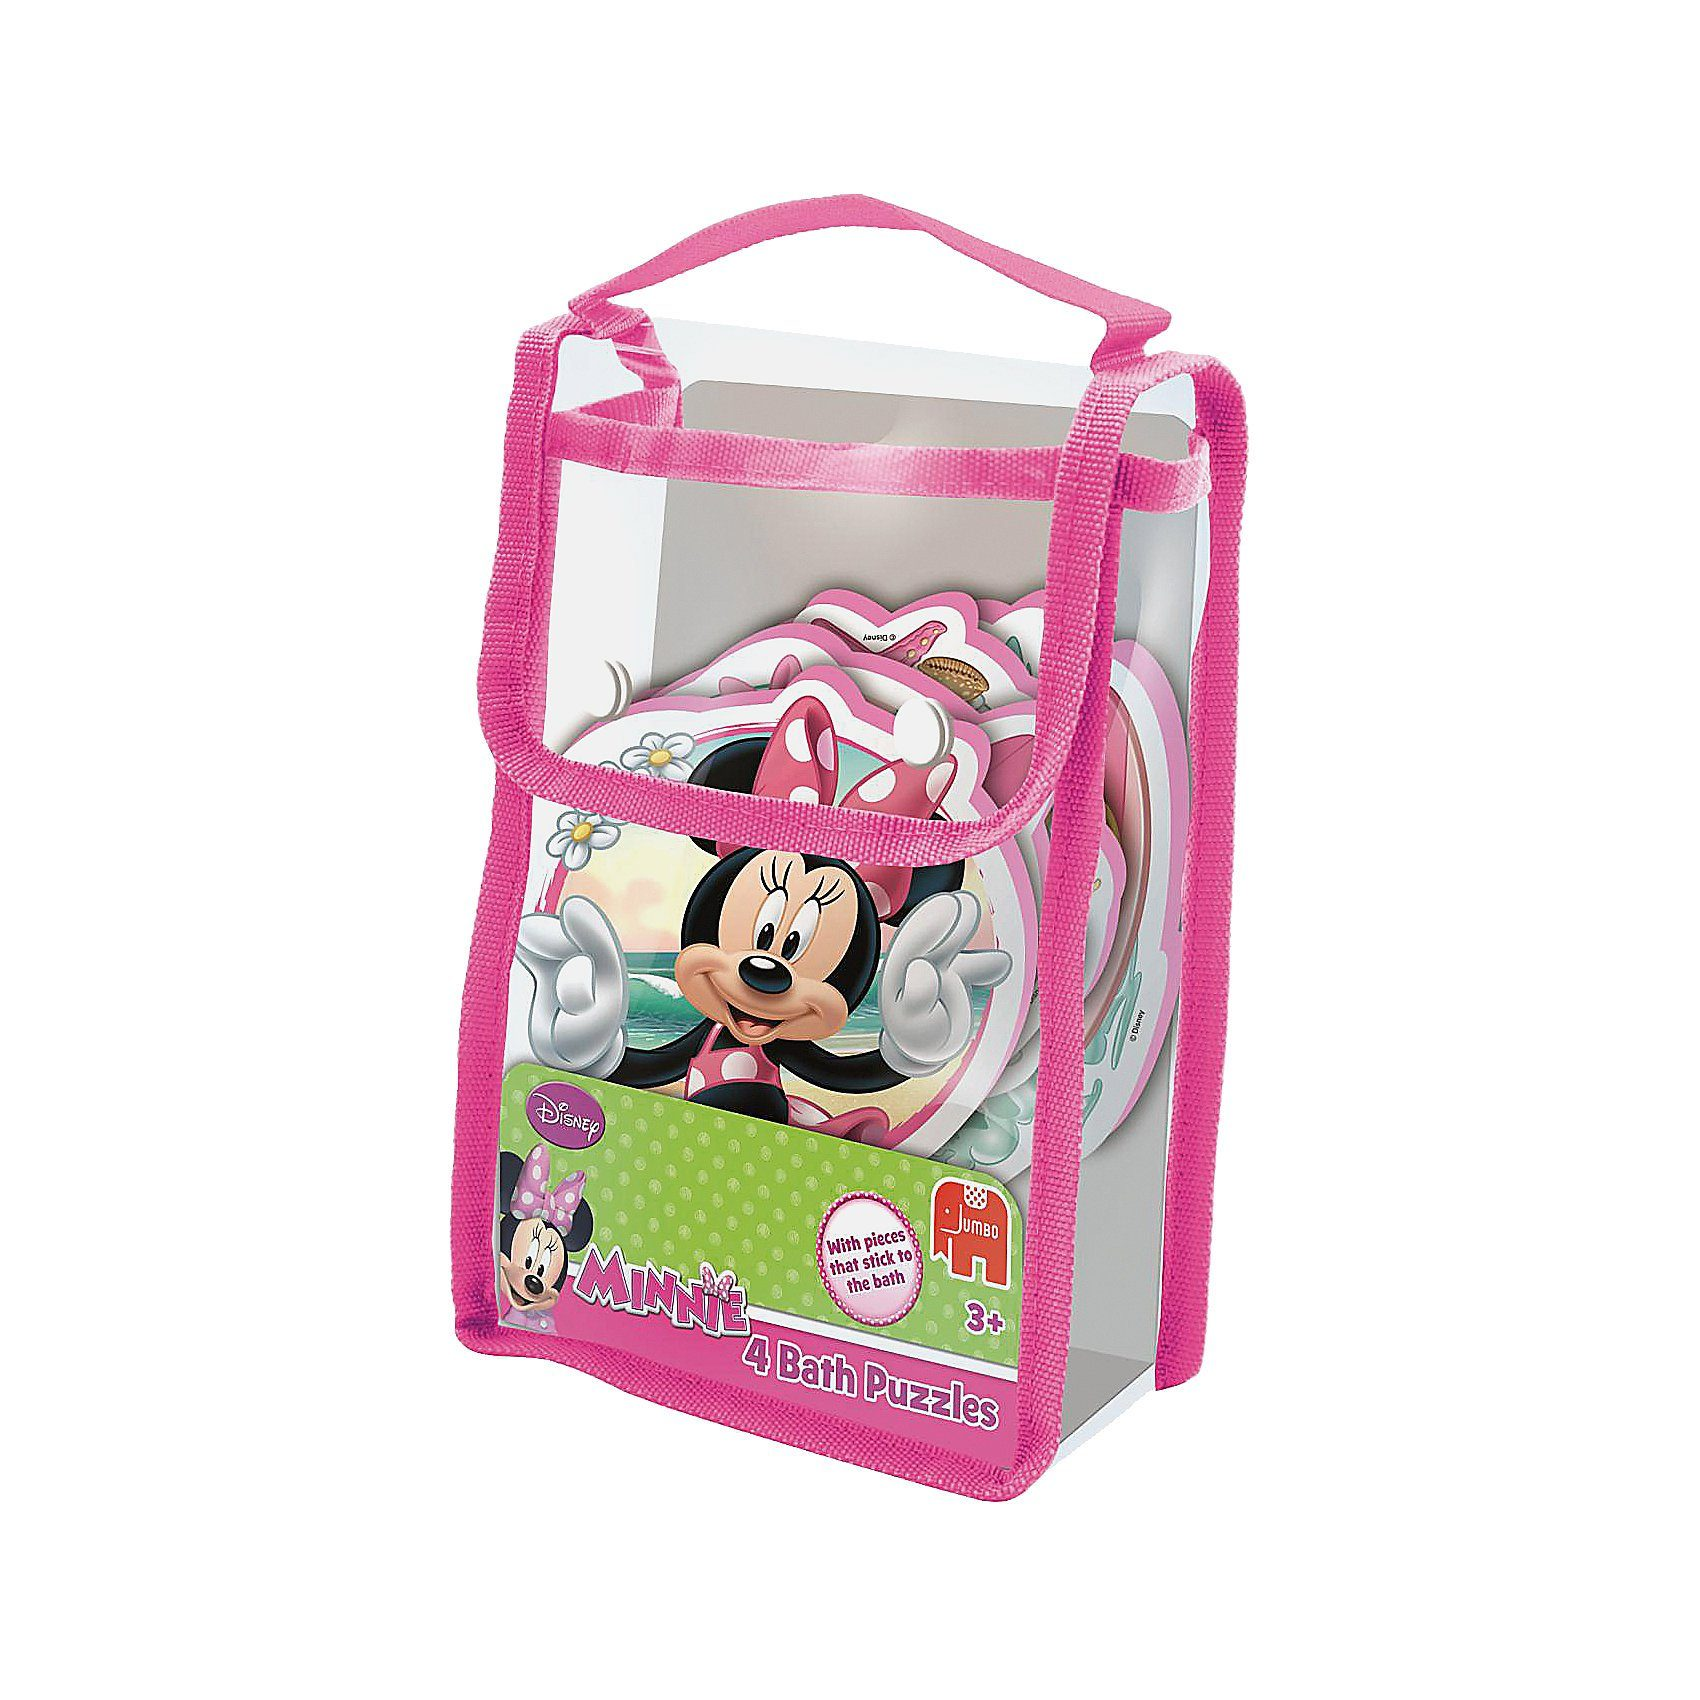 Jumbo Disney Badepuzzle - Minnie Mouse